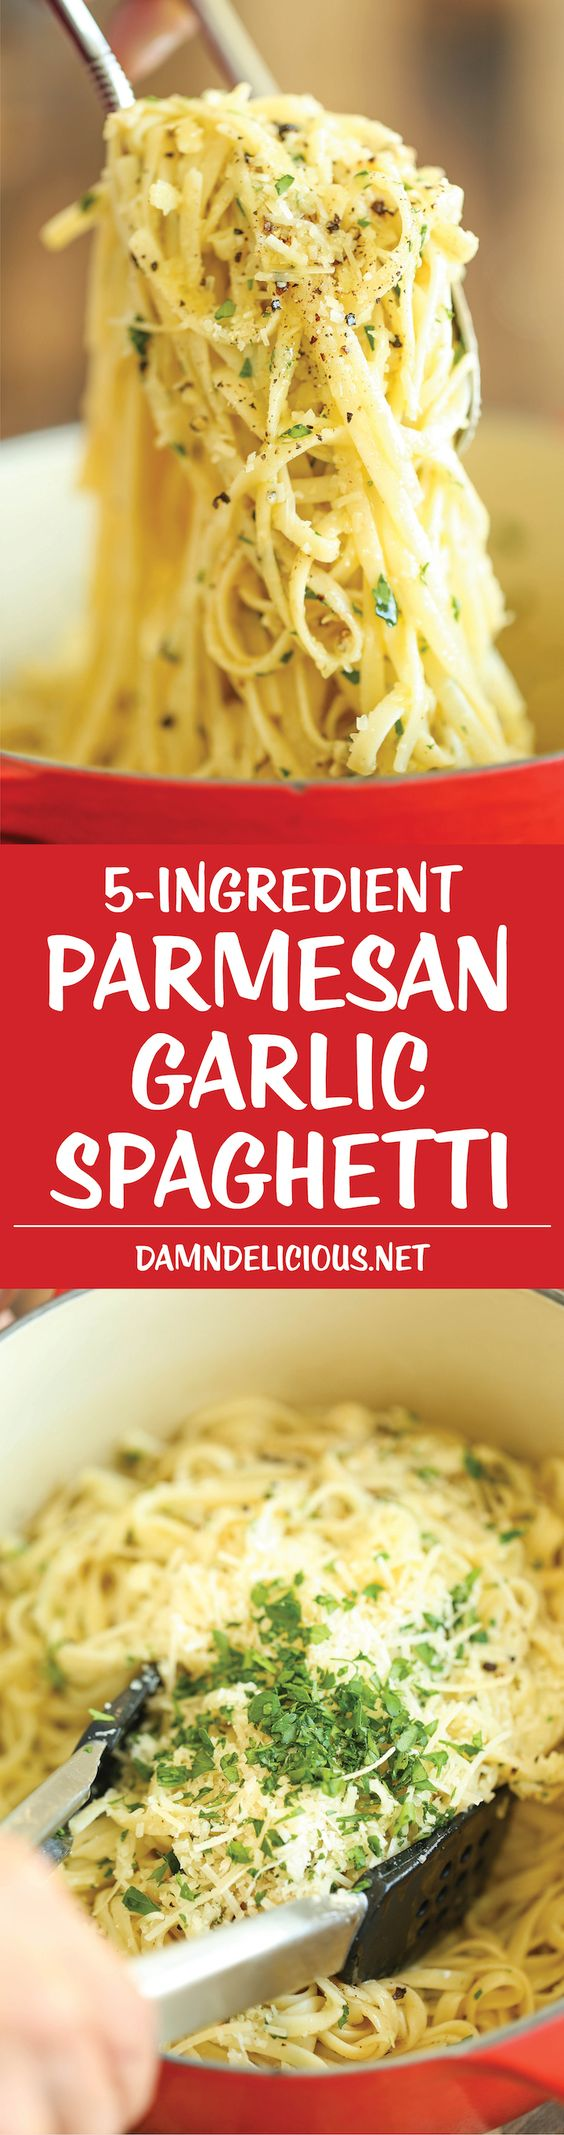 Parmesan Garlic Spaghetti - 5 ingredients. 20 minutes. With melted butter, garlic and freshly grated Parmesan. A winning combination for the ENTIRE family!: